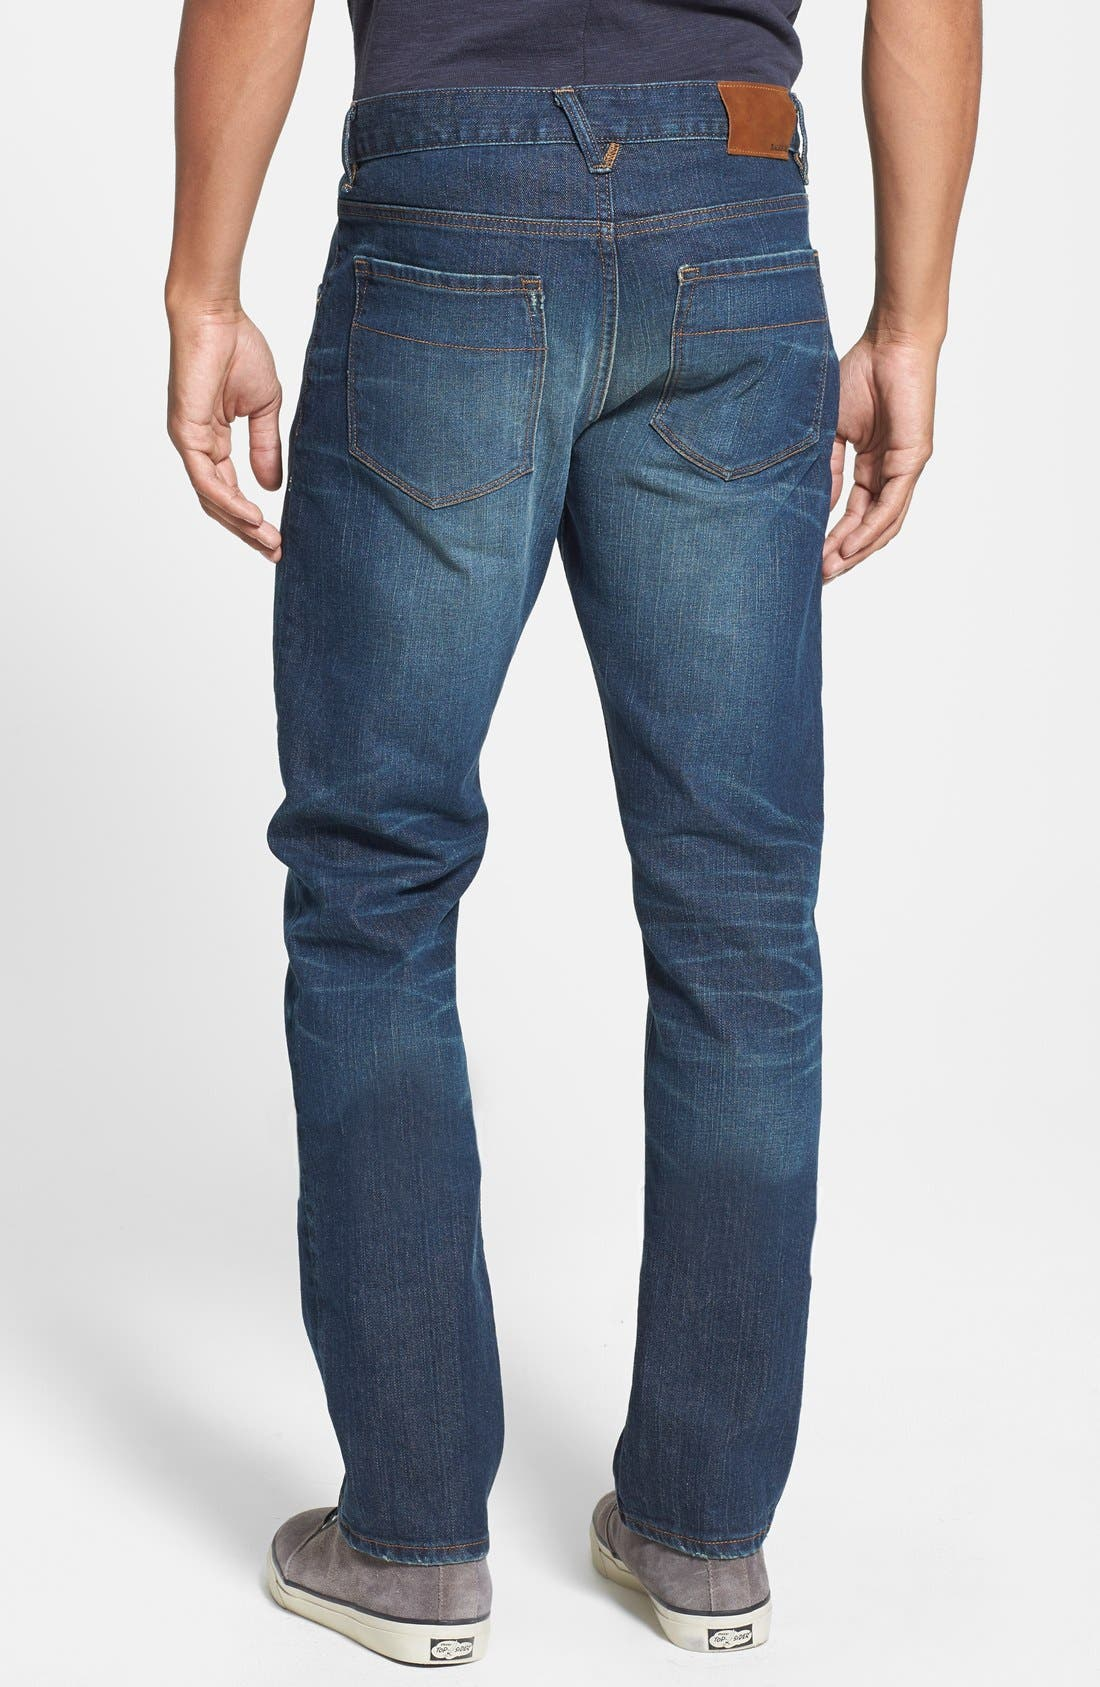 'Jones' Slim Straight Fit Jeans,                             Alternate thumbnail 4, color,                             CAMP